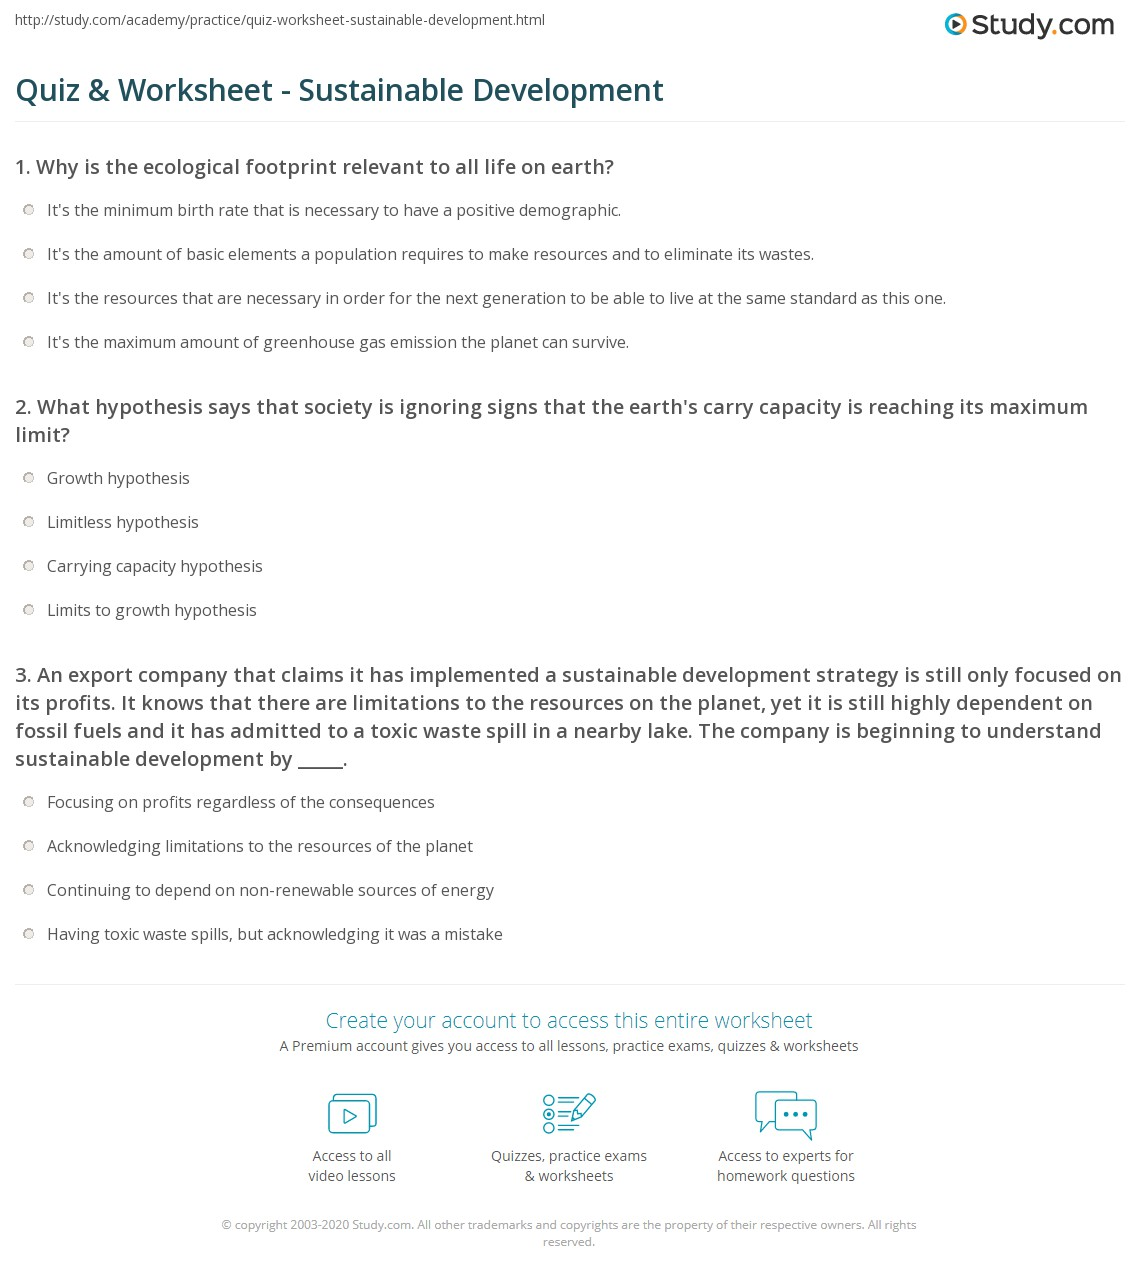 quiz & worksheet - sustainable development | study